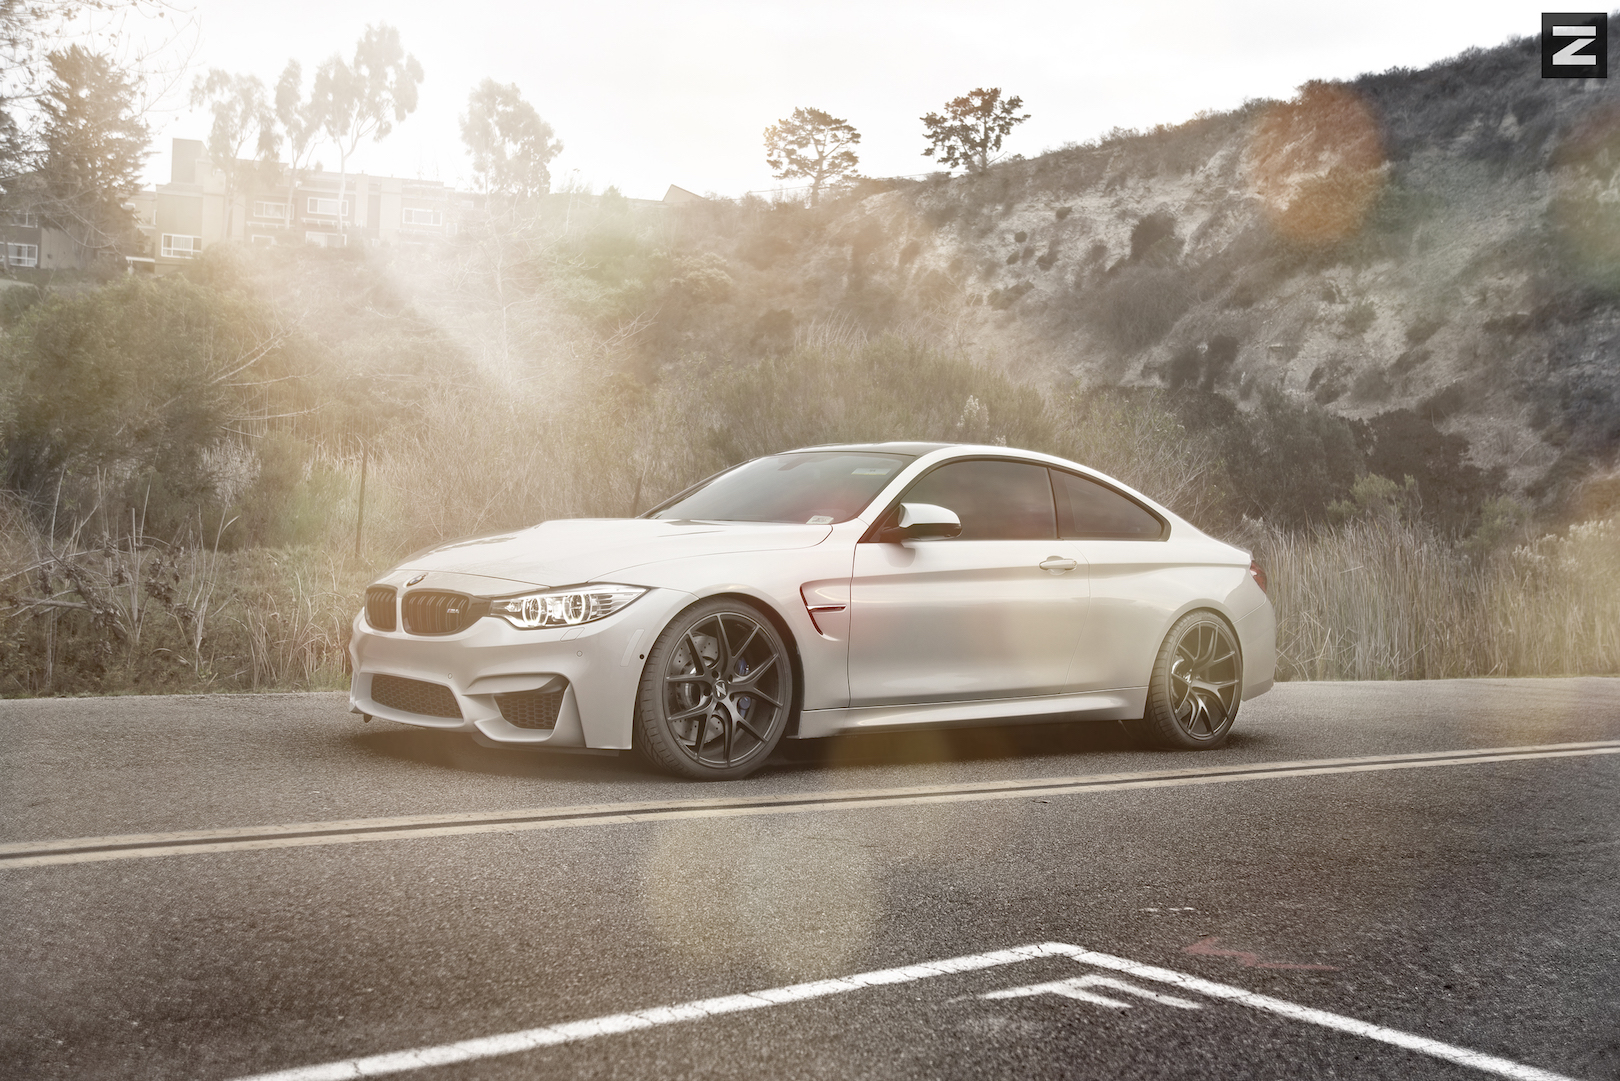 BMW F82 M4 White Black ZS05